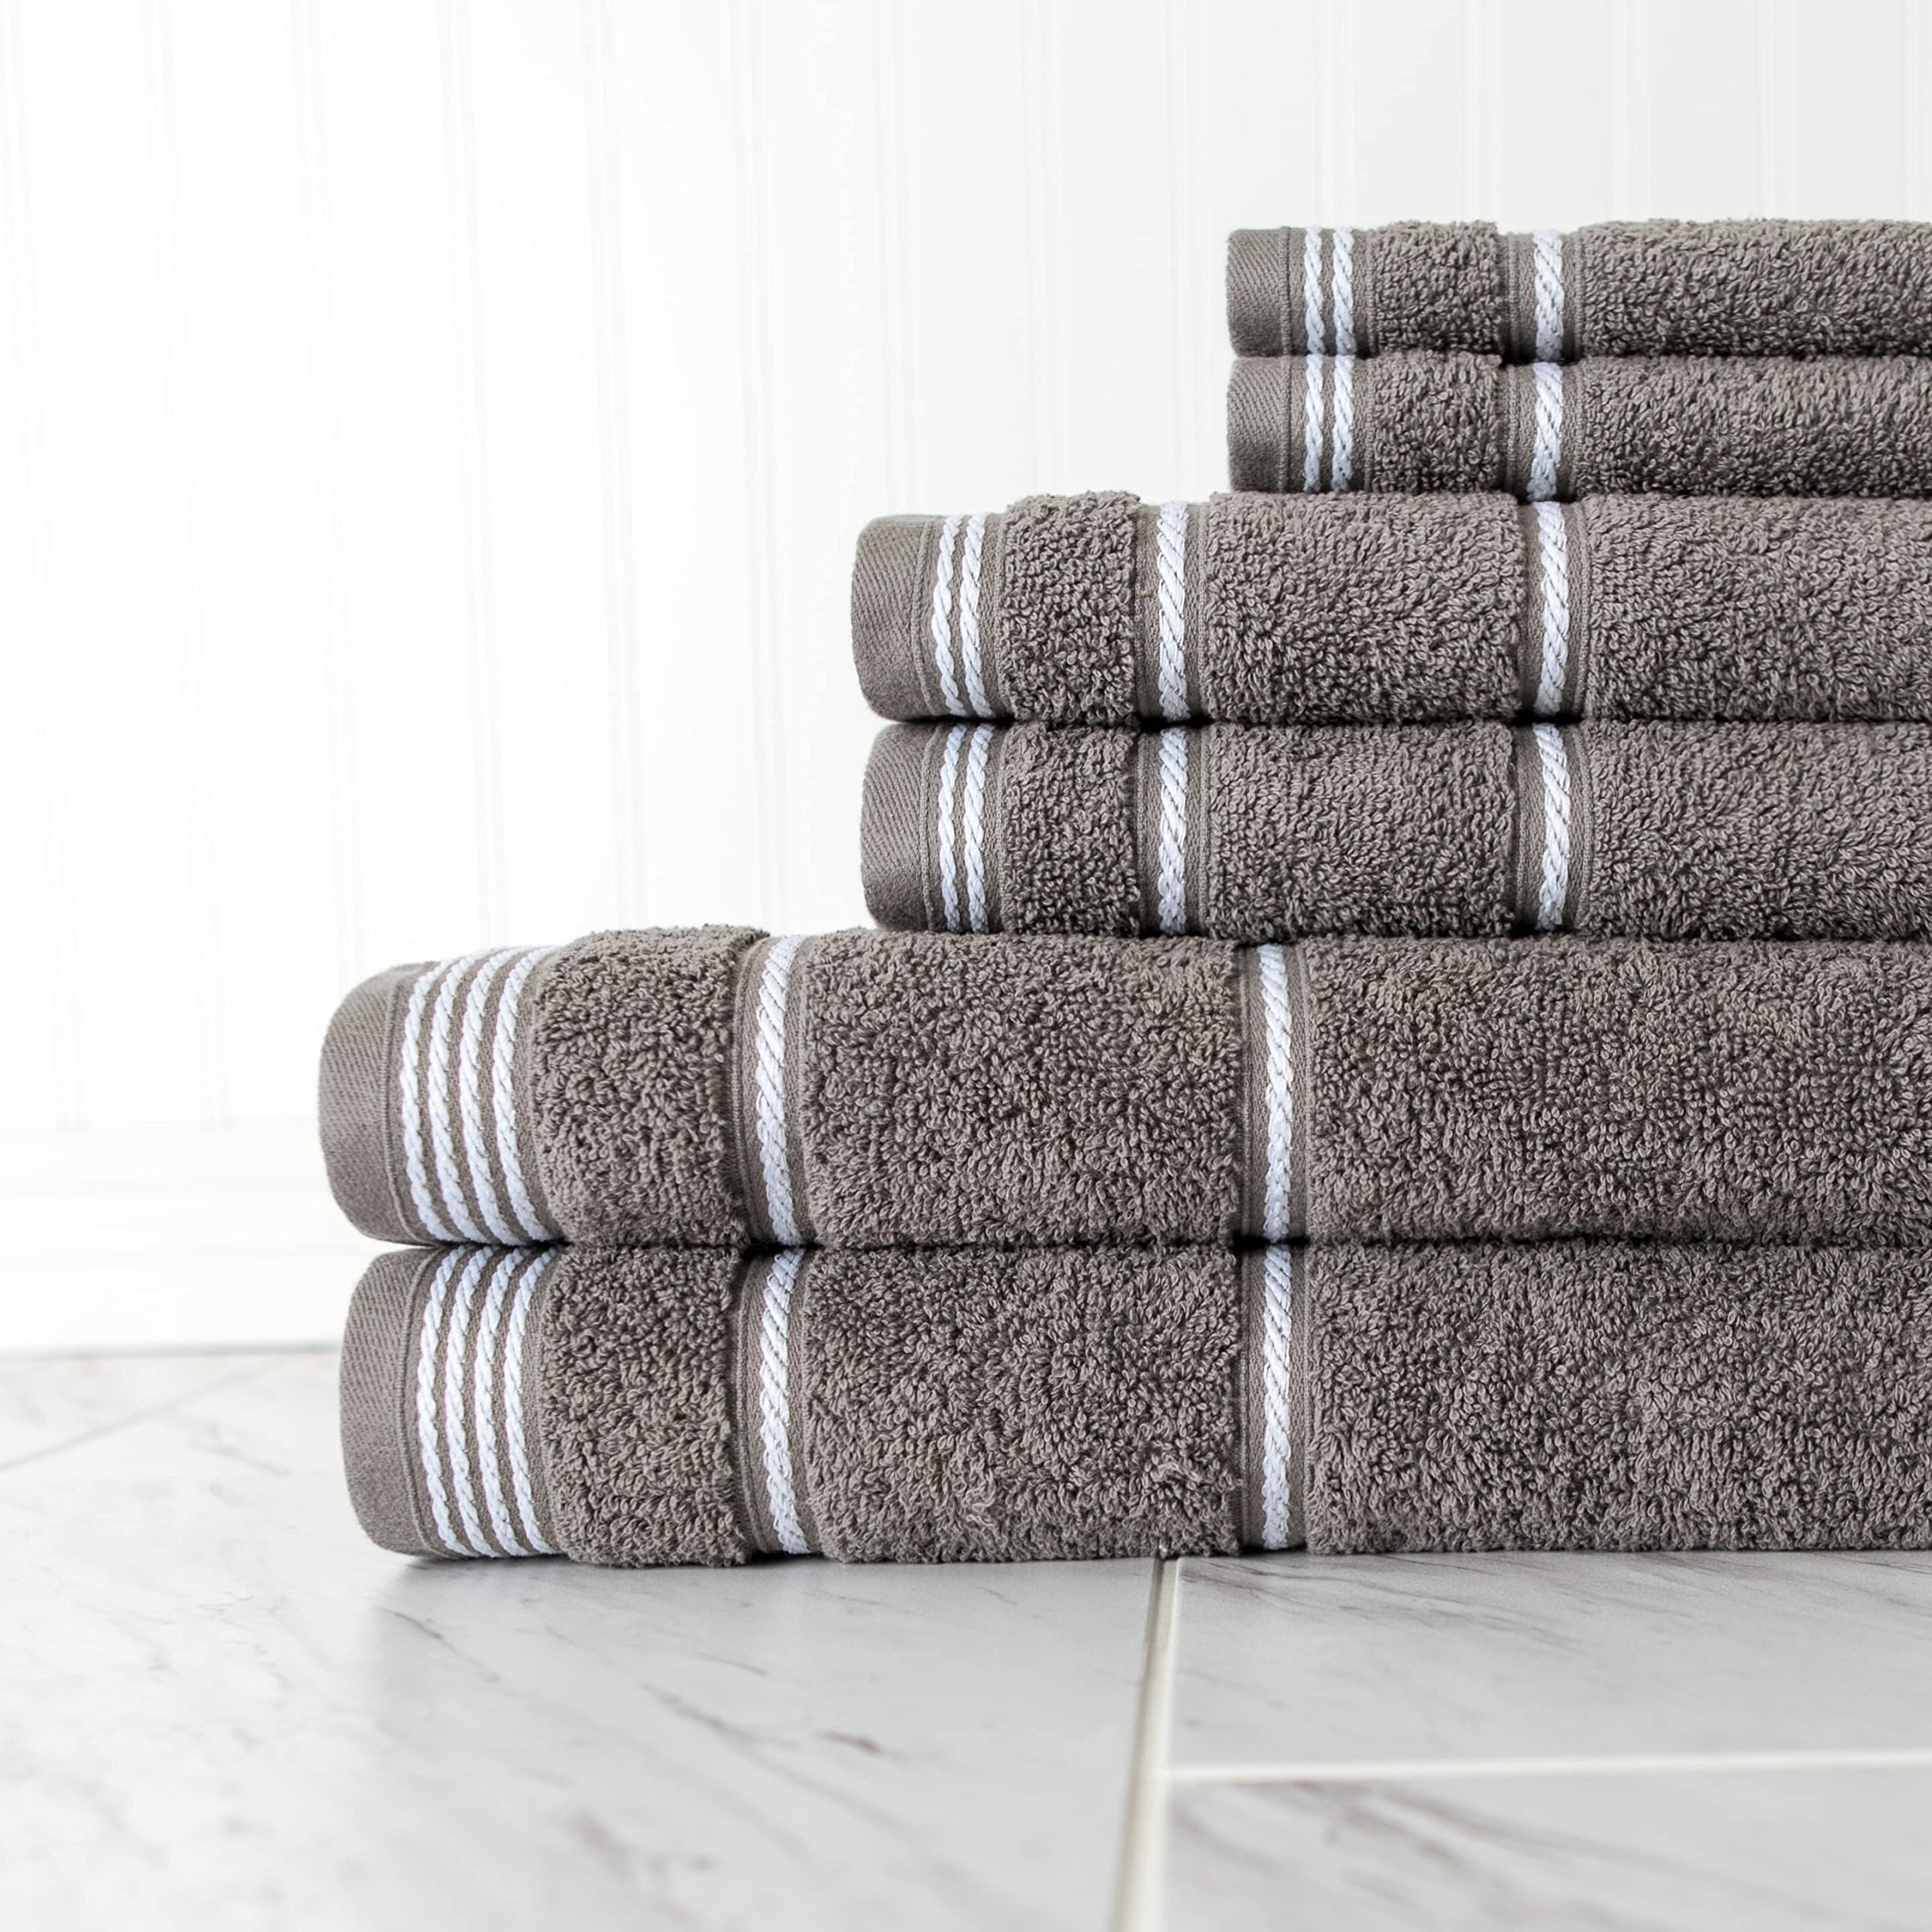 N2 6 Piece Large Grey Rope Trim Bath Towel Set, Smokey Gray Stripe Pattern Solid Color Woven Towels Tailored Nautical Luxurious Hotel Style Bathroom Sheets Soft Decorative Bright Vibrant, Cotton